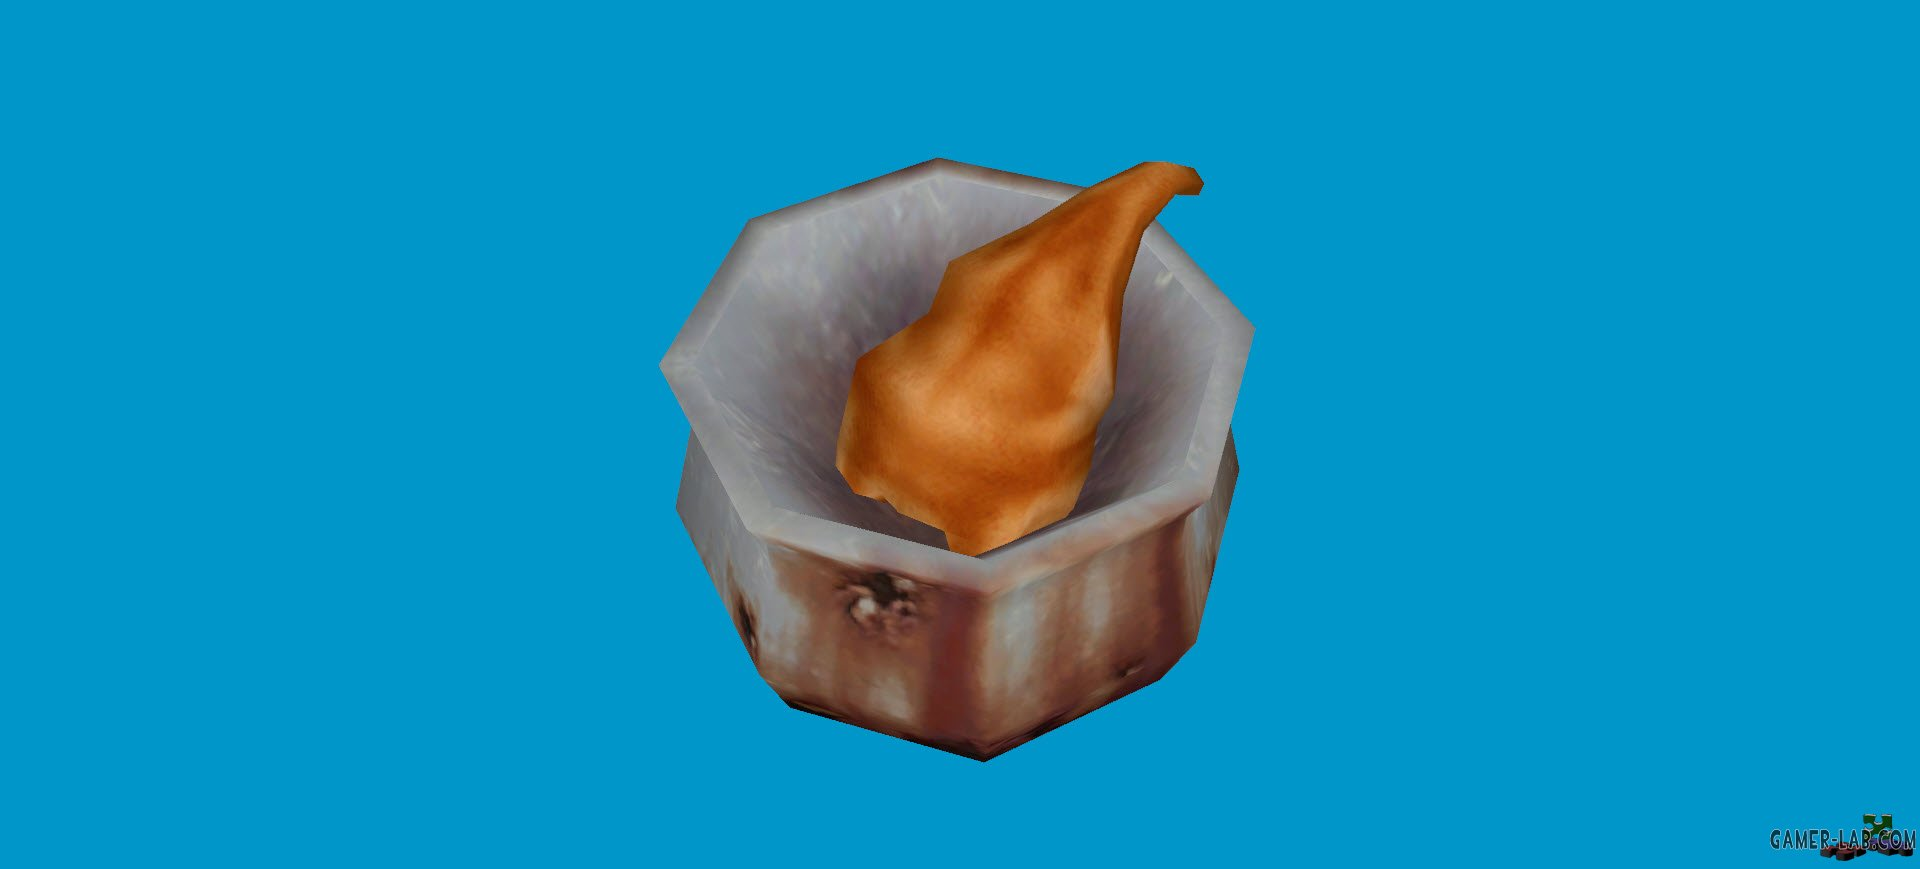 sta_chicken_in_pot